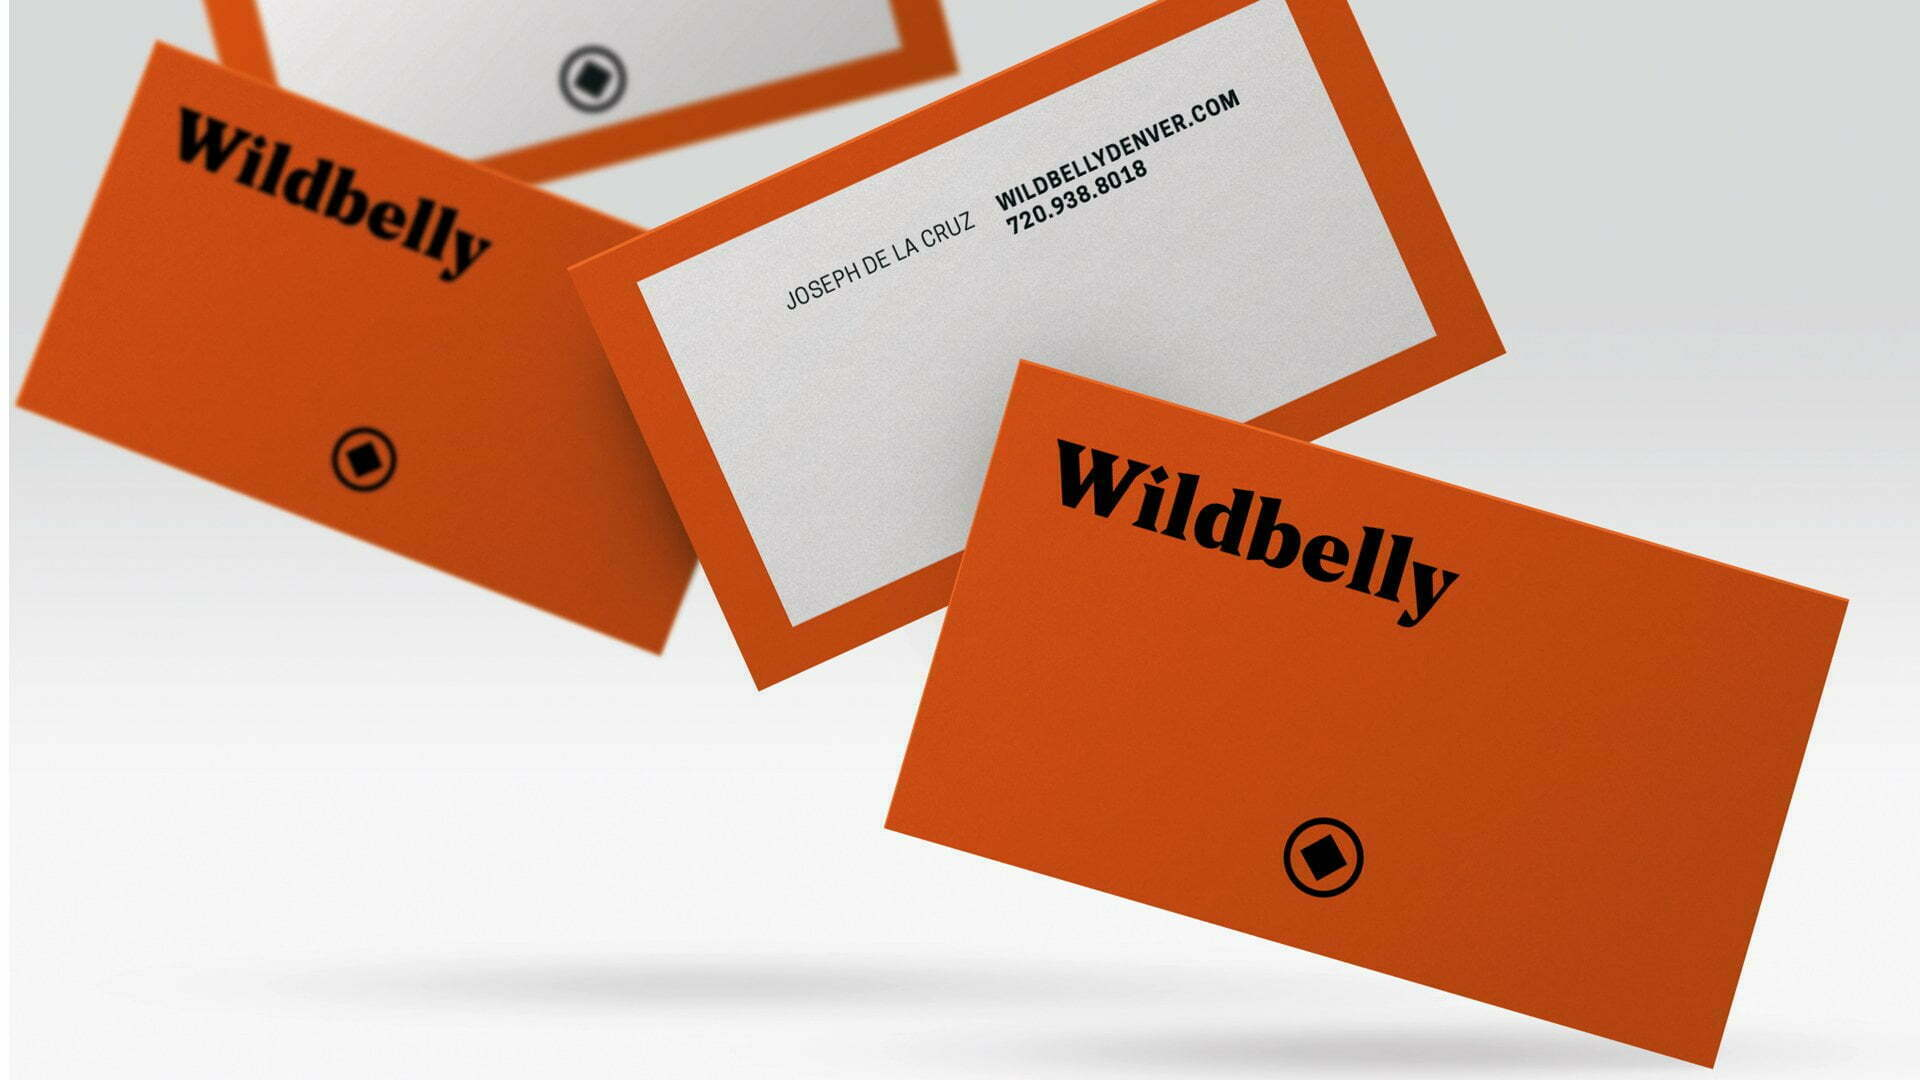 Wildbelly Business-Cards_Orange-1